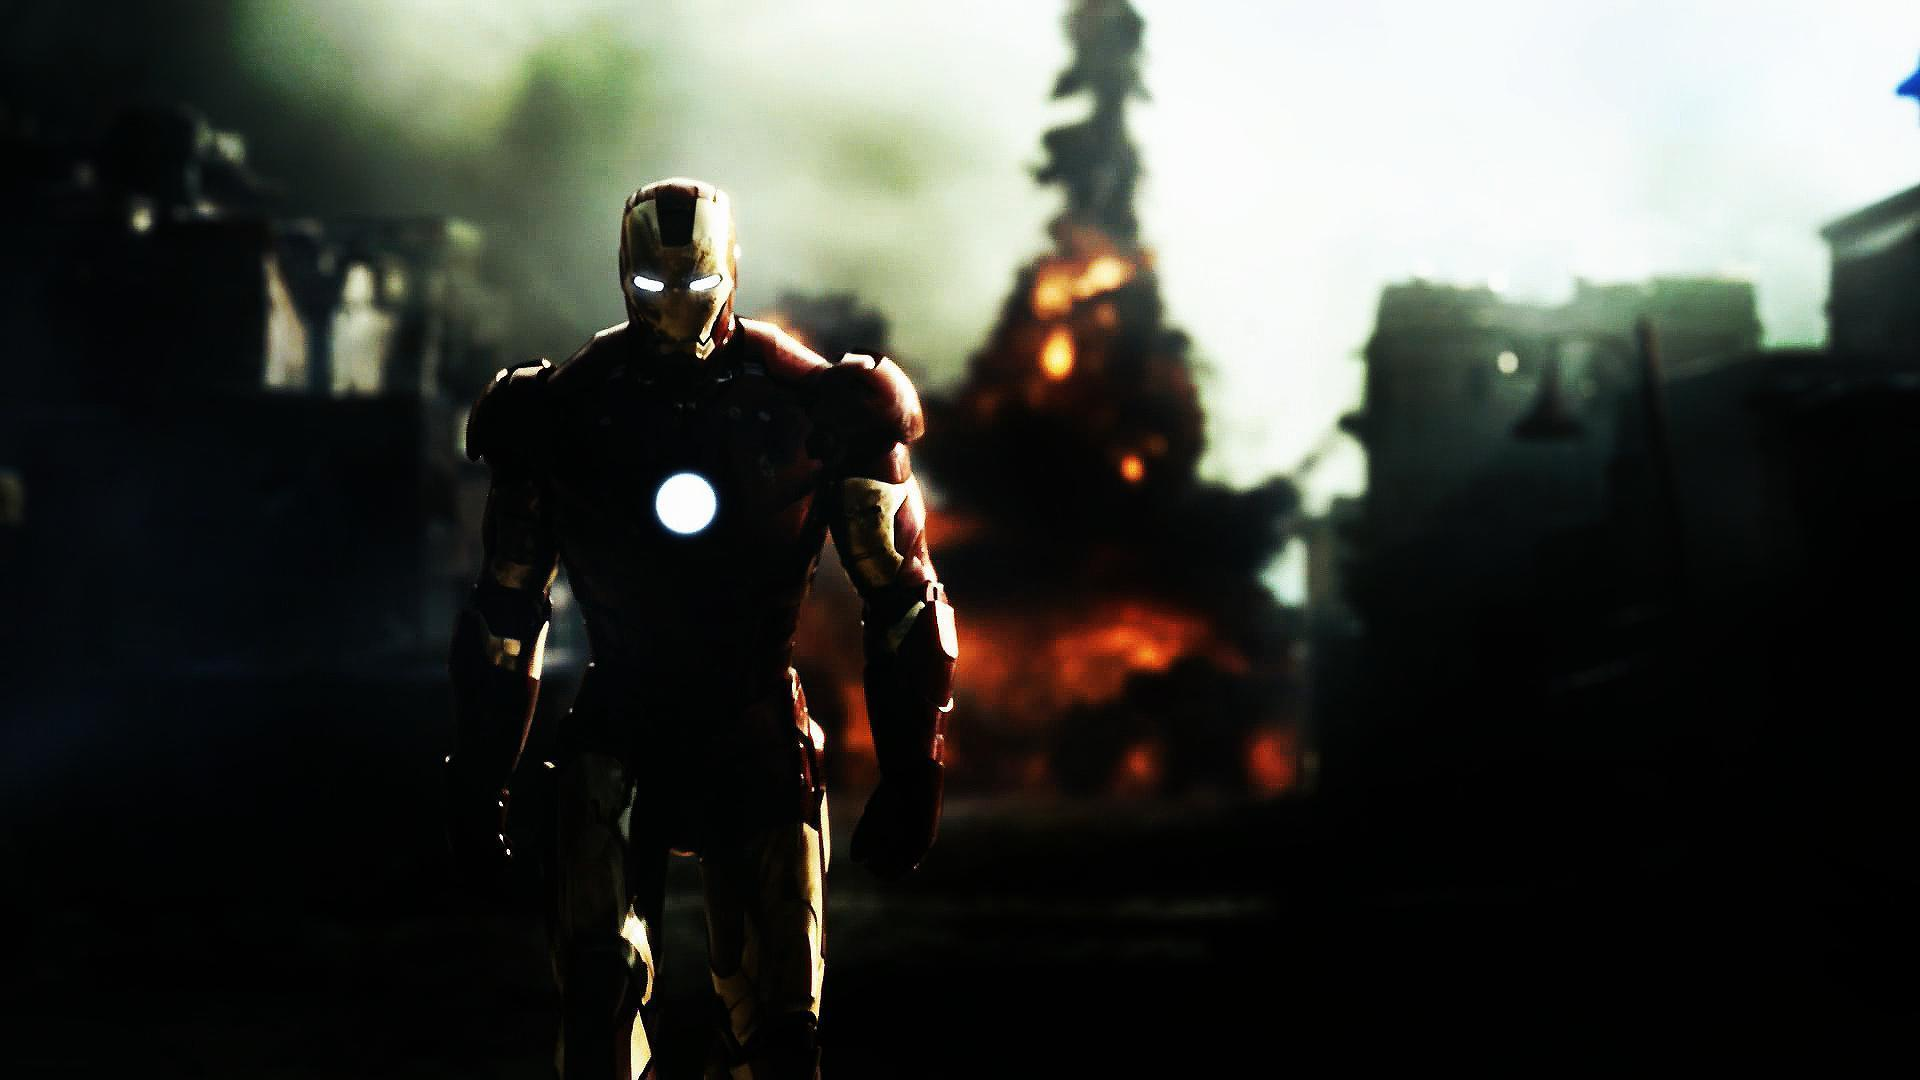 Iron man wallpapers hd wallpaper cave - Iron man 1 images ...